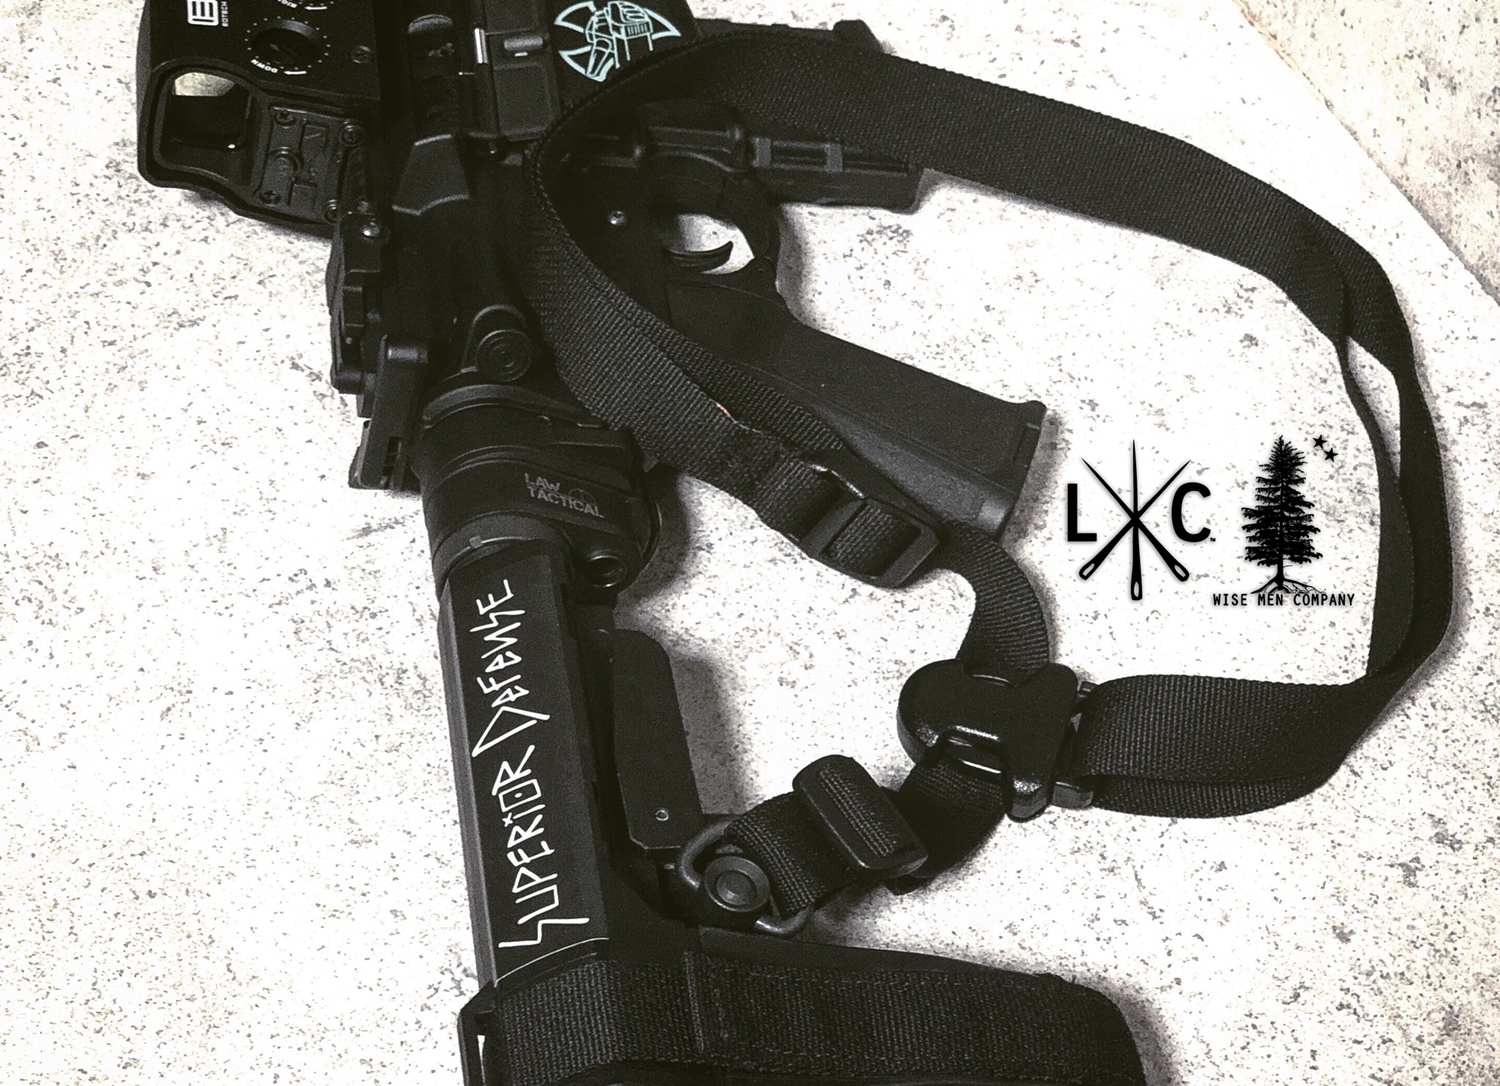 TOP 実物 LUNAR CONCEPTS BASELINE SINGLE POINT SLING & Impact Weapons Components SLING MOUNT QD D-RING!! シングルポイントスリング!!